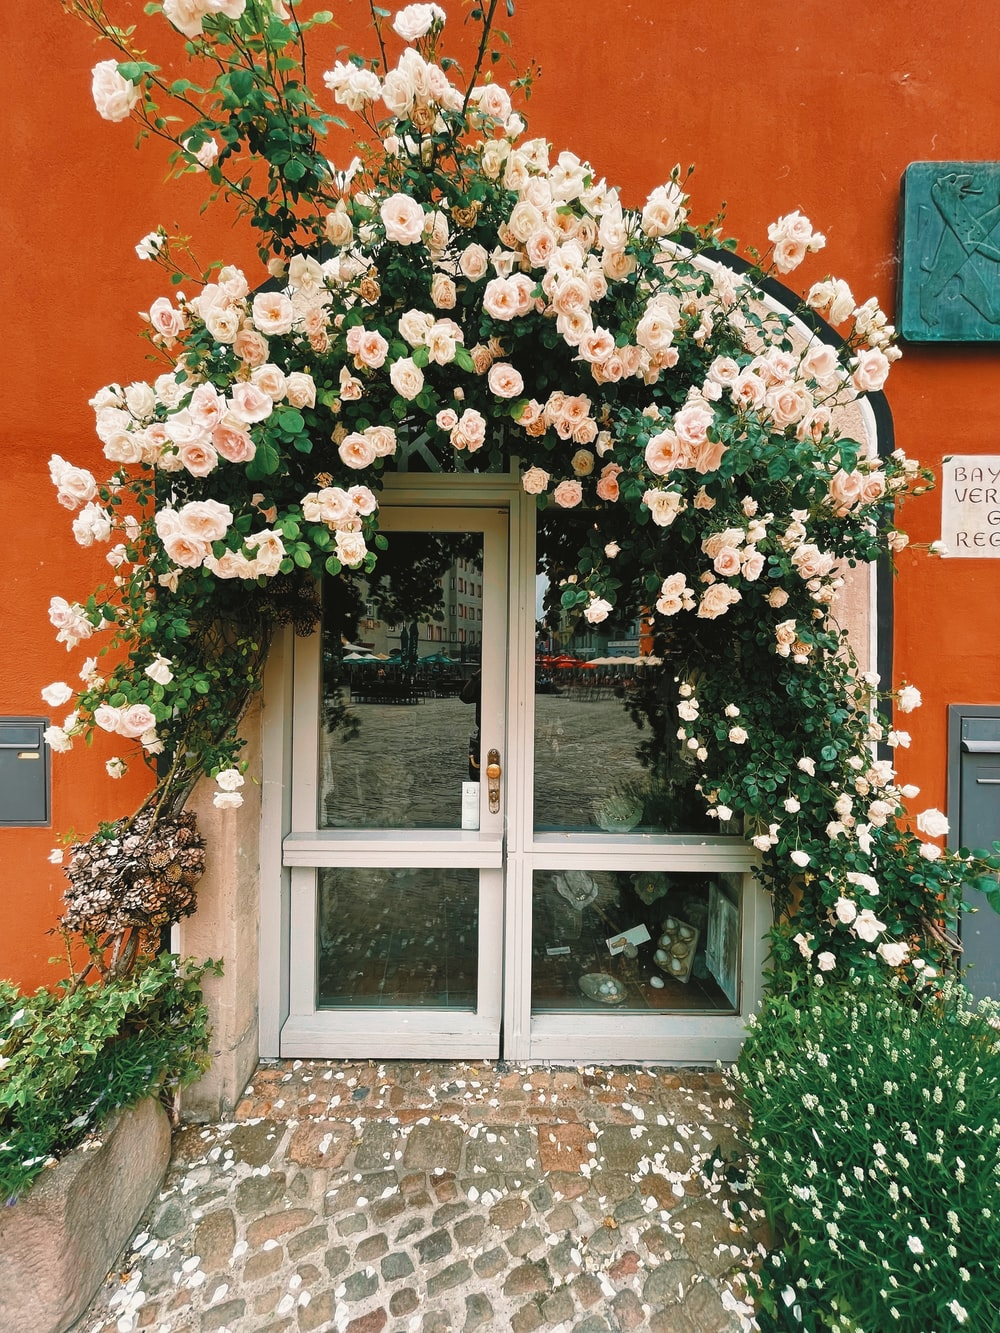 white wooden framed glass window with white flowers